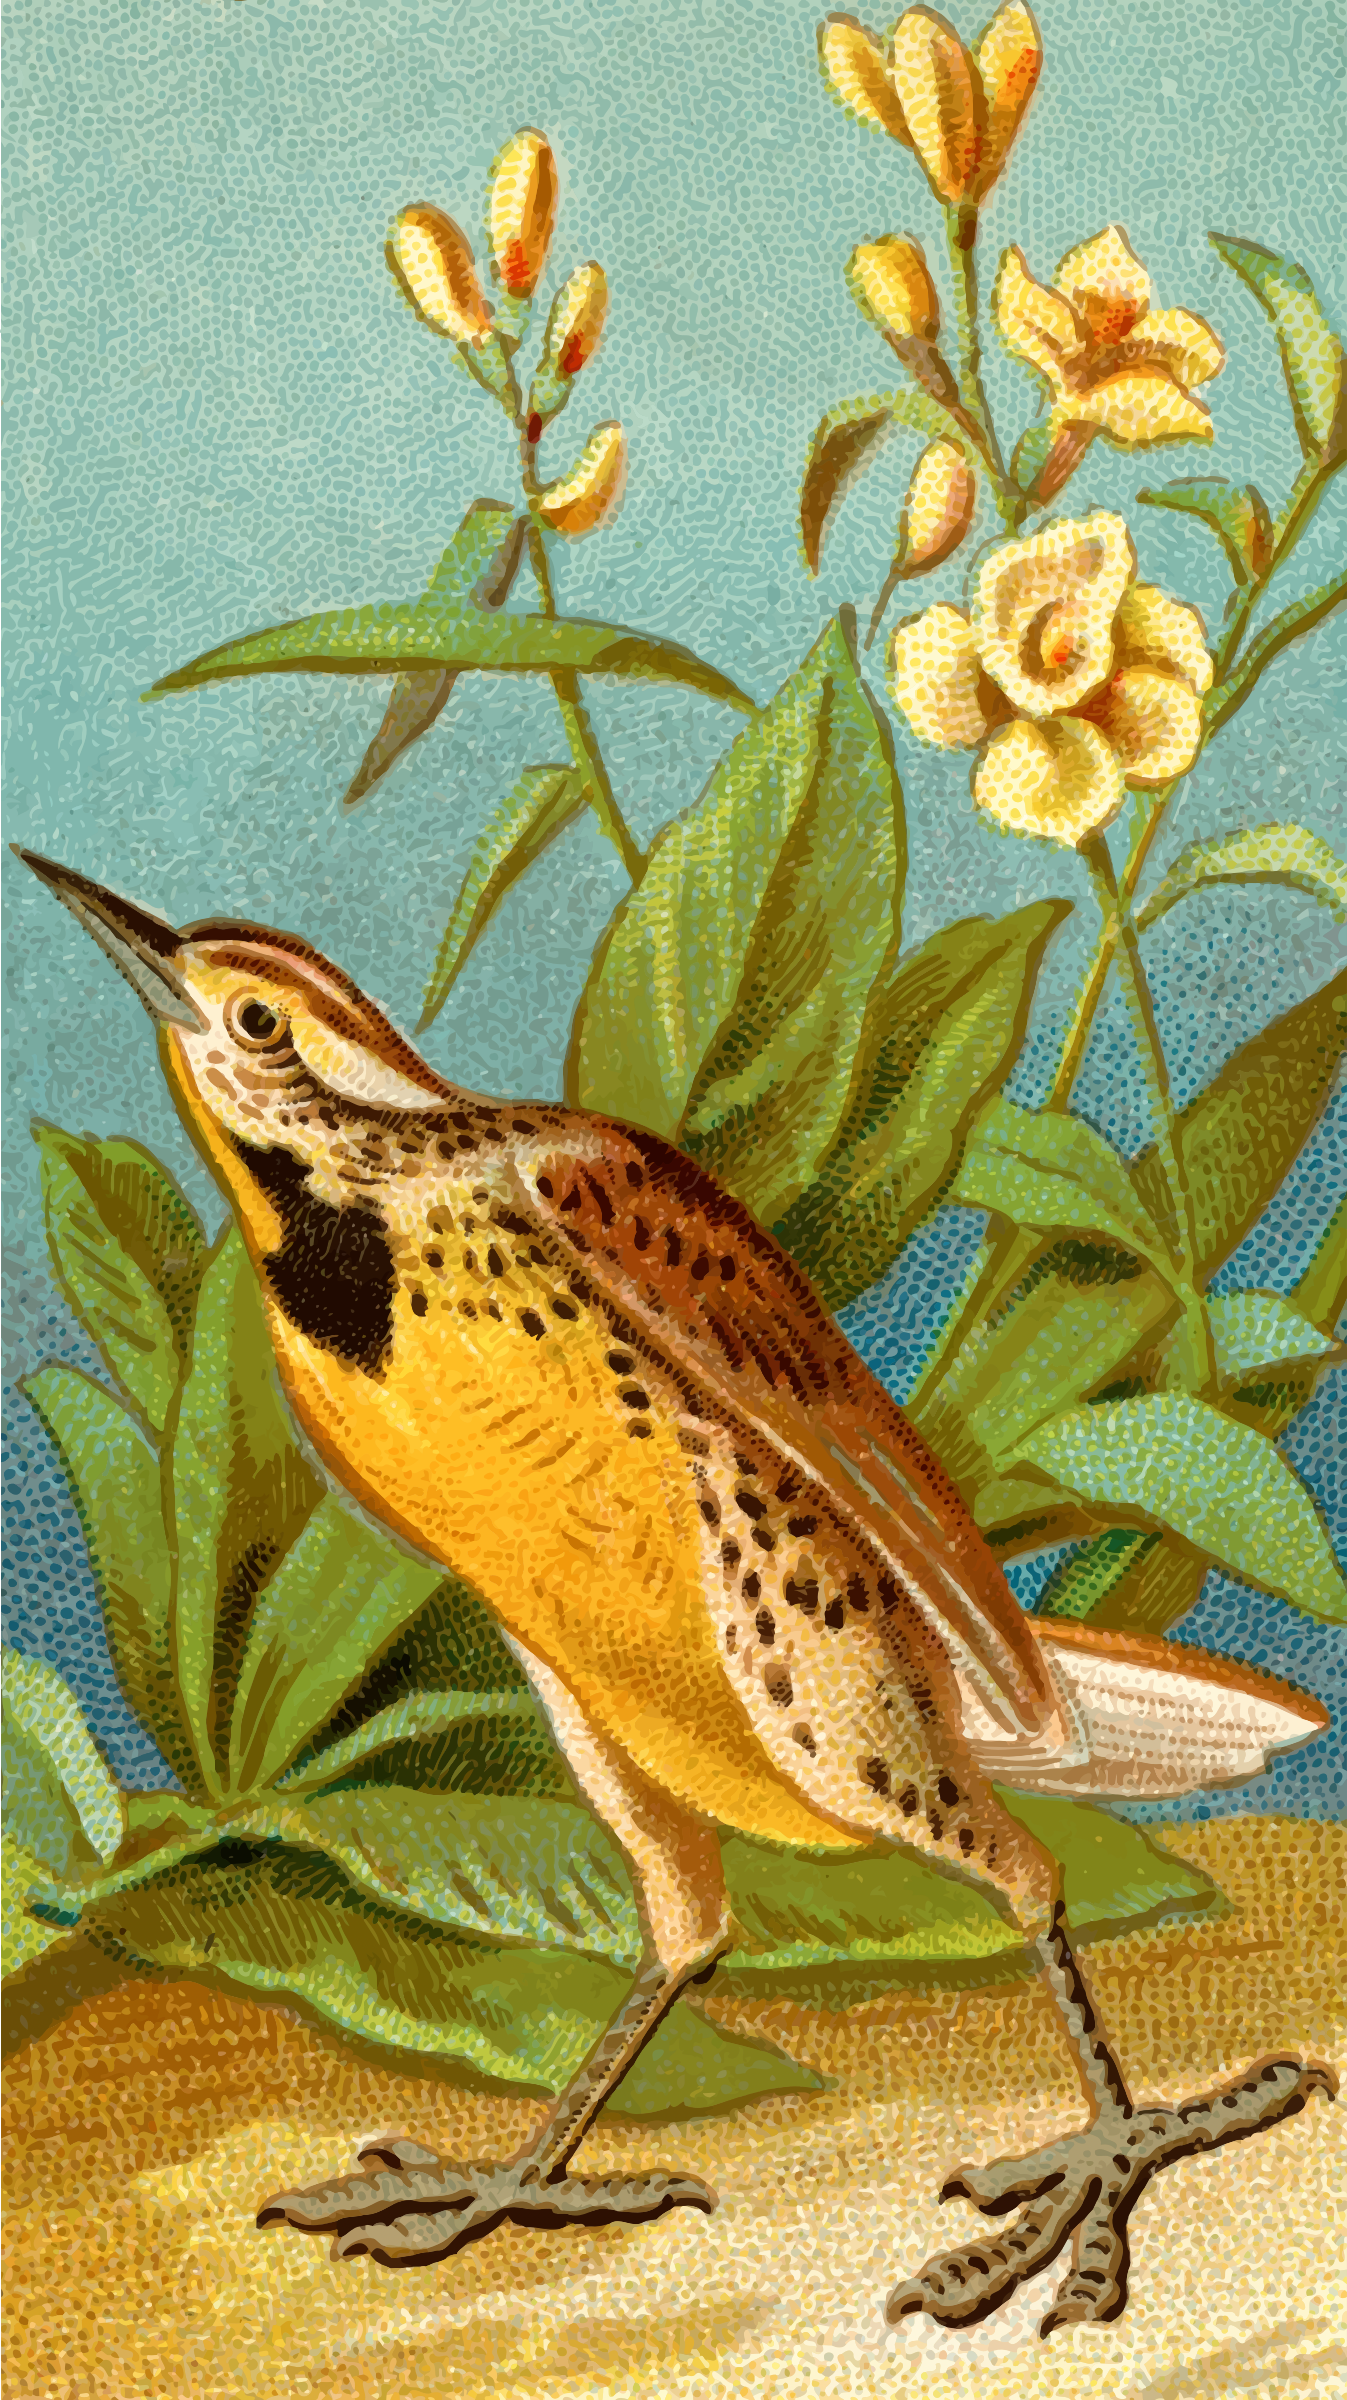 Cigarette card - Meadow lark by Firkin